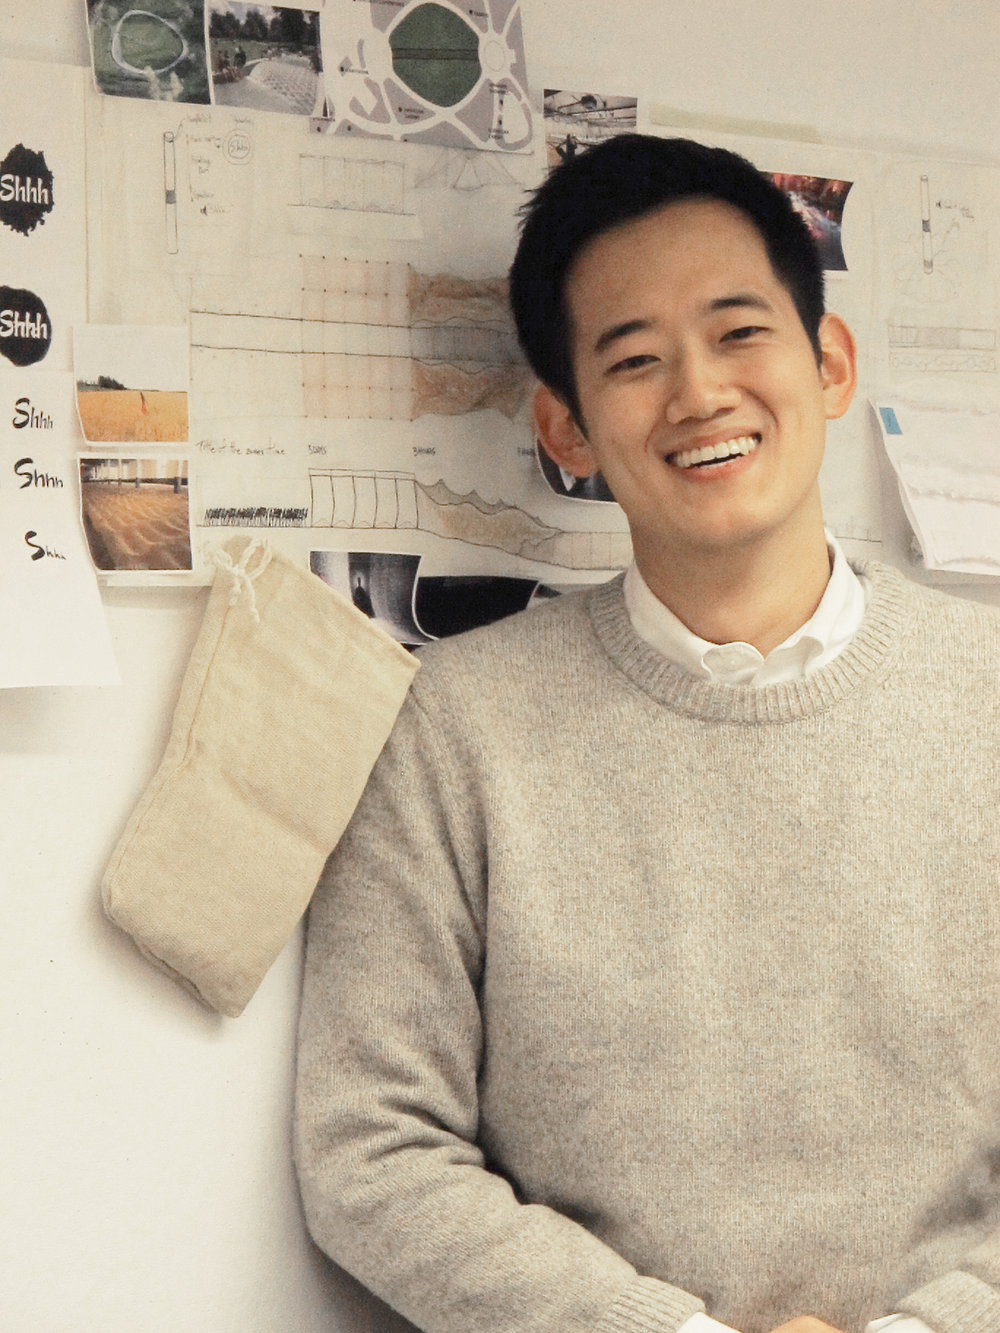 Chang hyun, Lee - Architect & Experience Designer